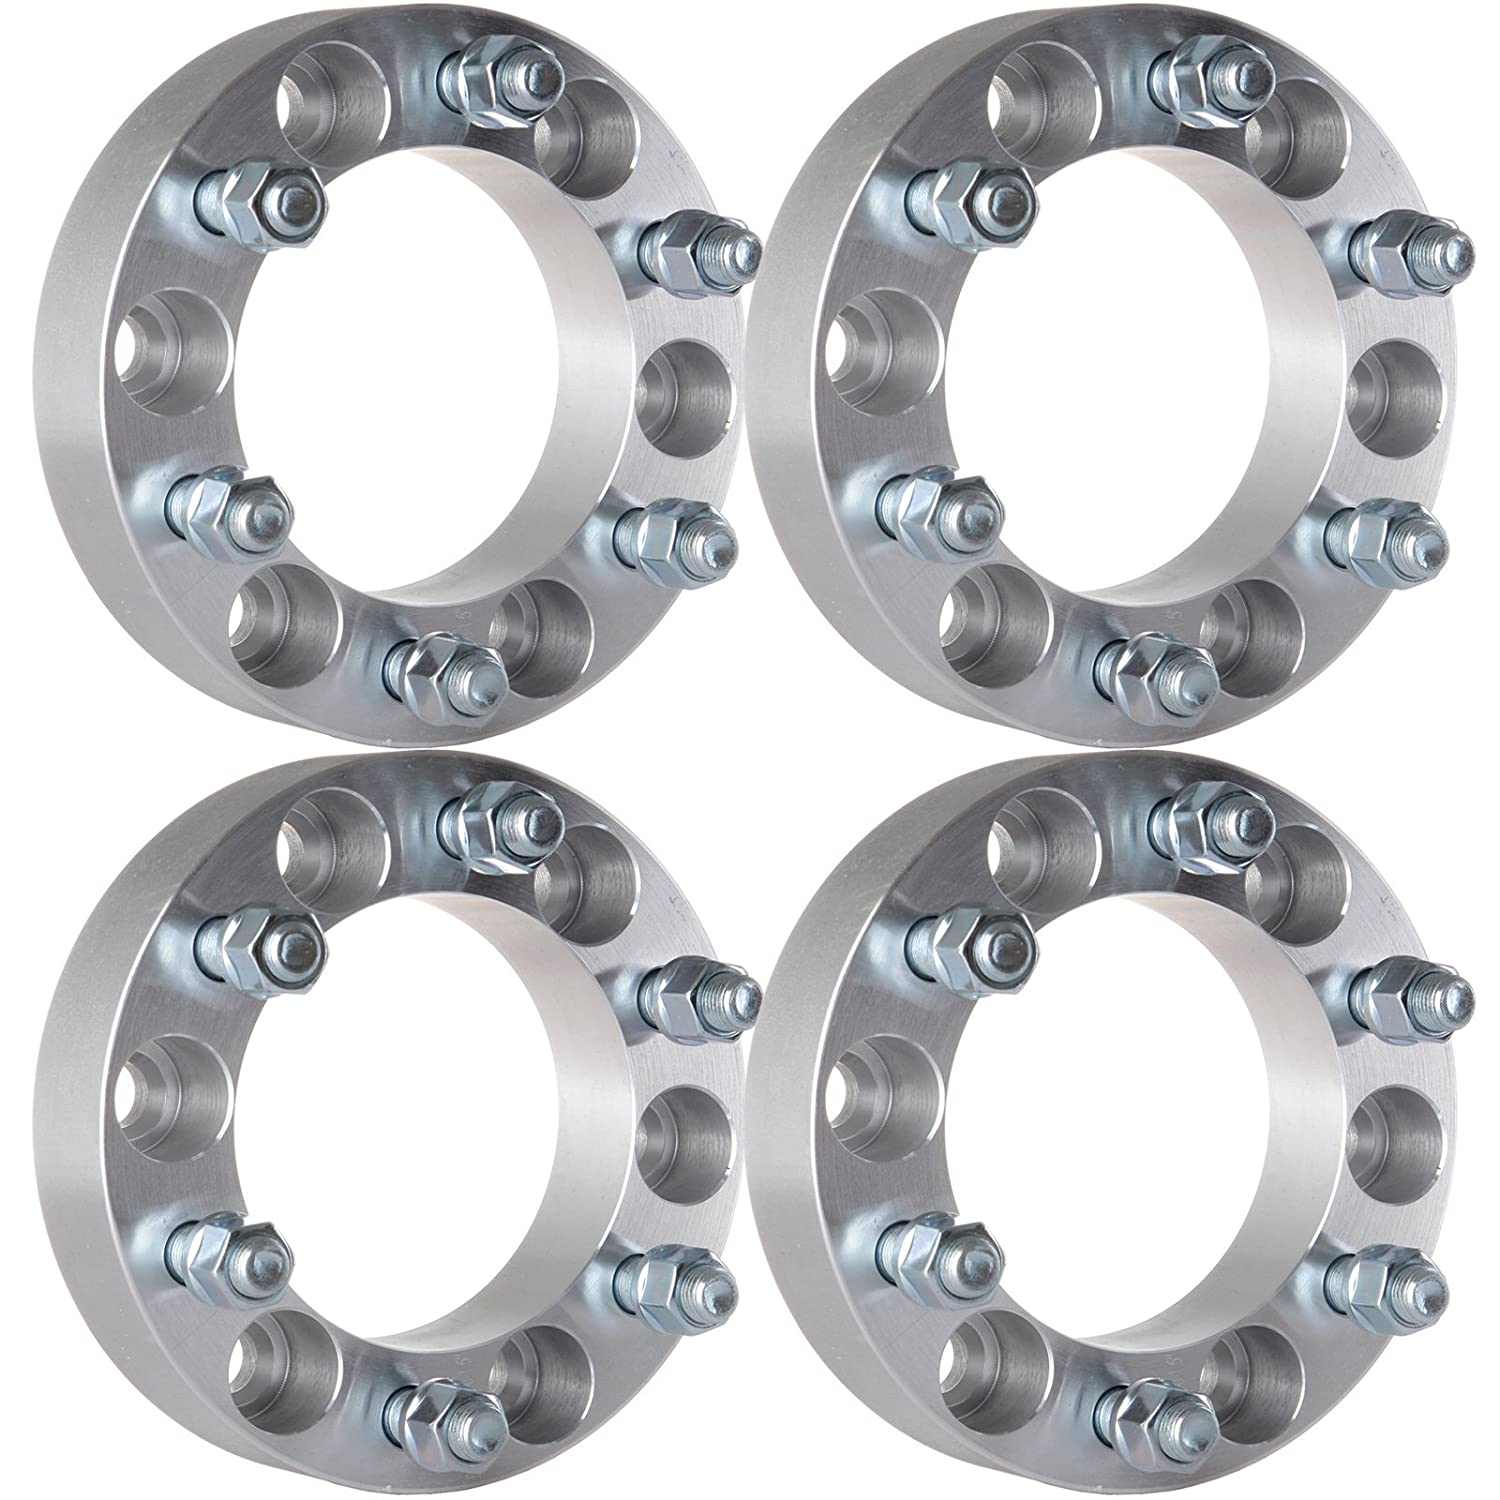 ECCPP Wheel Spacers 4PCS 1.5 inch(38mm) thick 6x5.5 to 6x5.5 Fit for 2007-2012 Chevrolet Avalanche Express 1500 Suburban 1500 Tahoe   Cadillac Escalade GMC Sierra Yukon Safari with 14x1.5 Studs 1.5inch 5x6.5